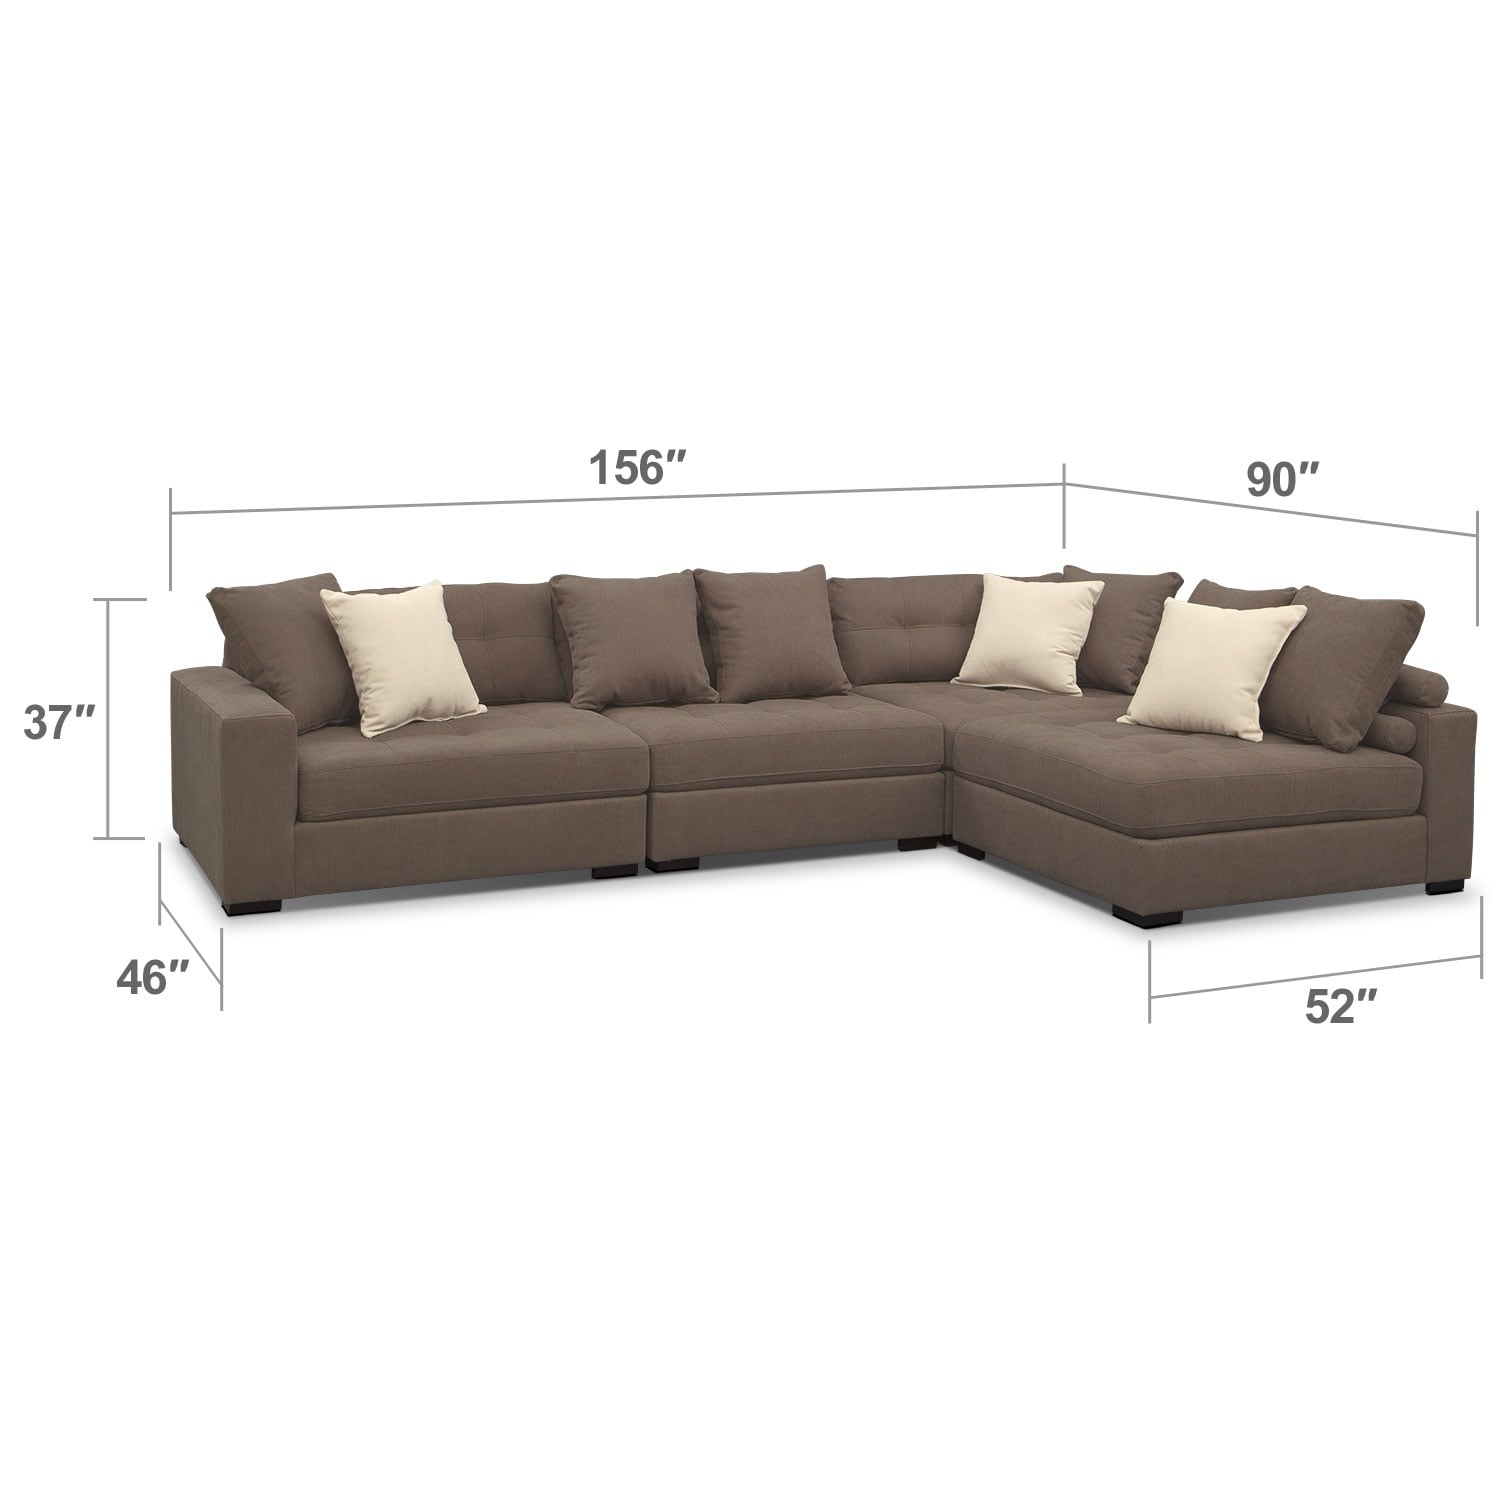 Living Room Furniture - Venti Mocha 4 Pc. Sectional